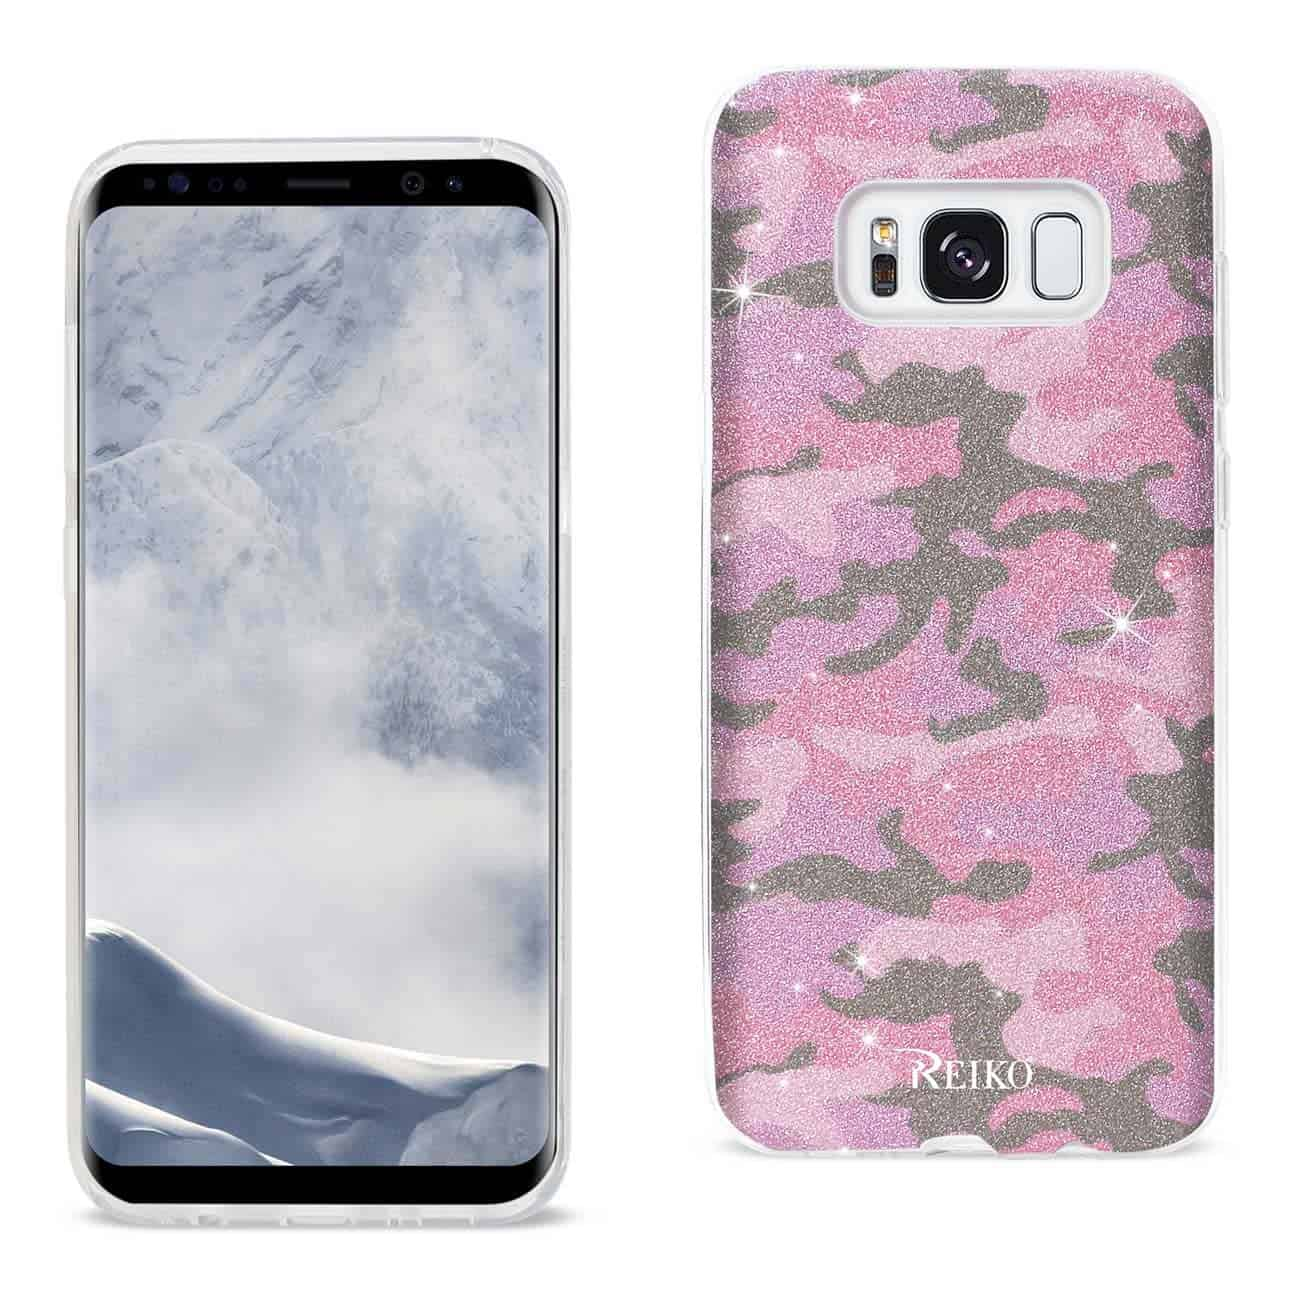 SAMSUNG GALAXY S8 EDGE/ S8 PLUS SHINE GLITTER SHIMMER CAMOUFLAGE HYBRID CASE IN HOT PINK